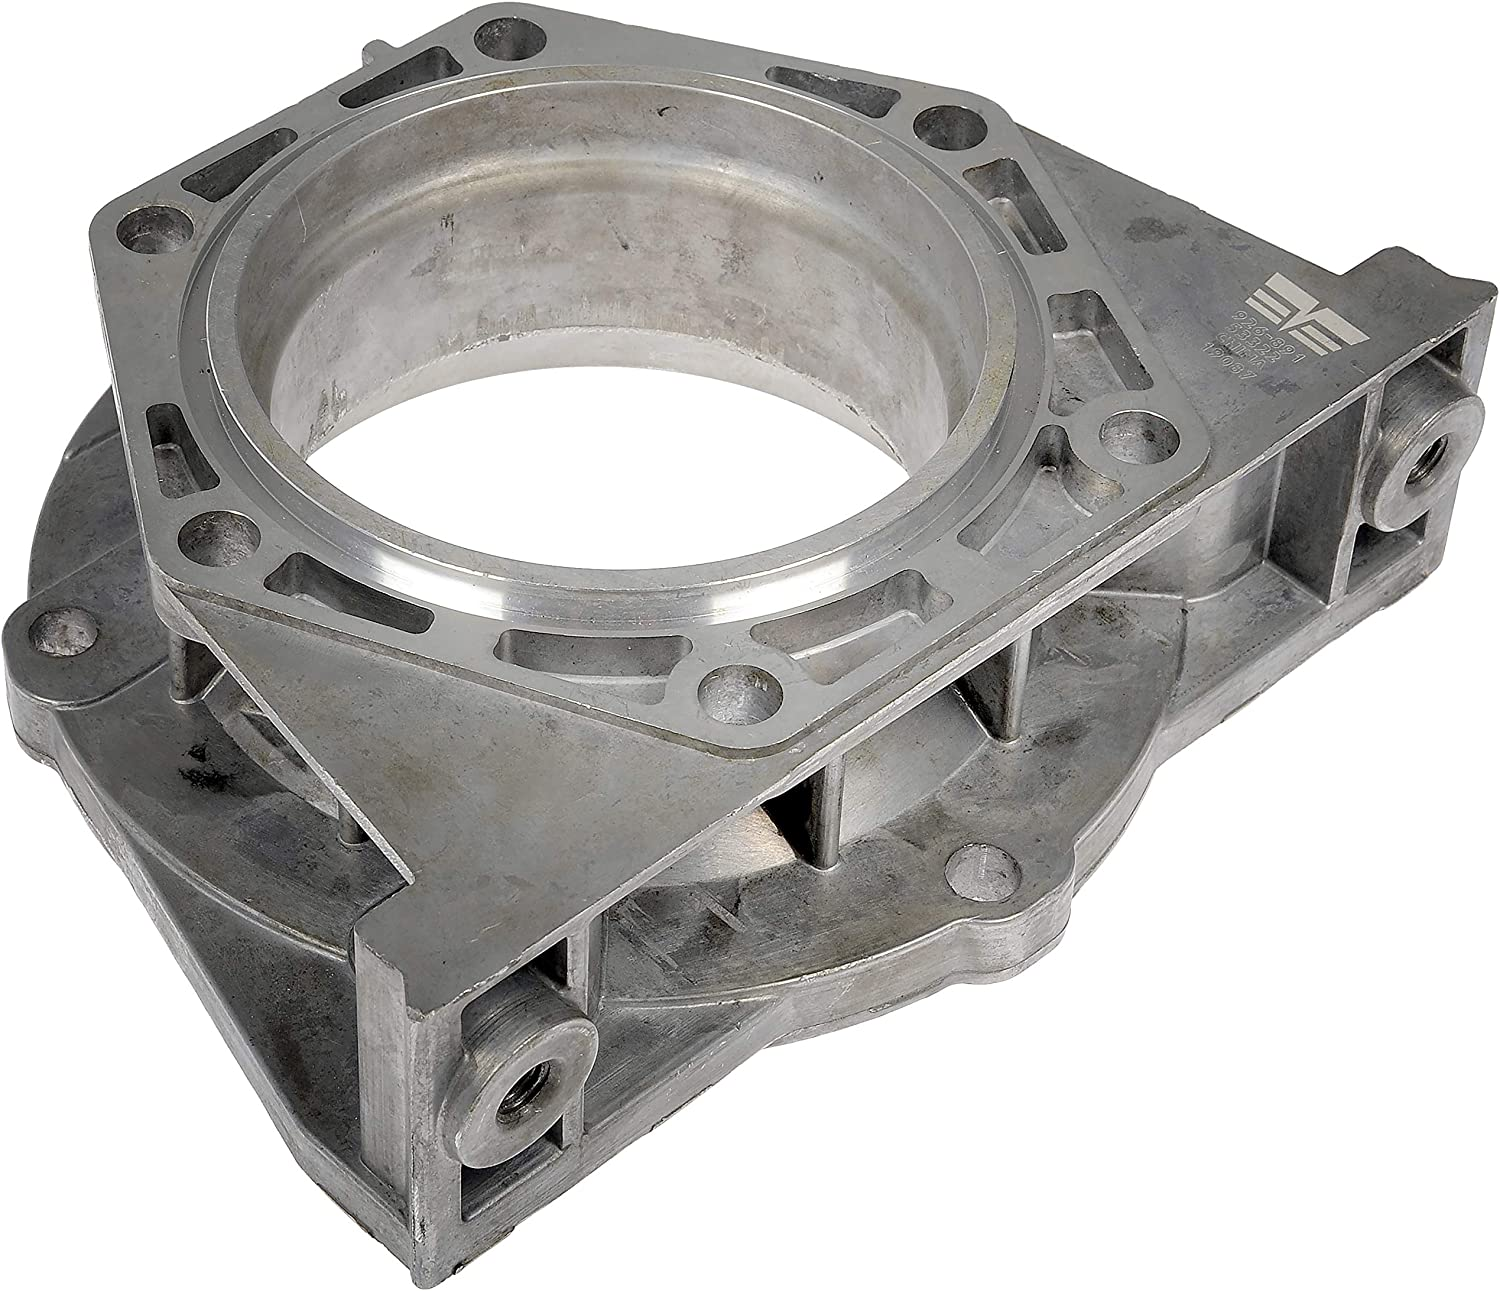 Dorman 926-891 Transfer Case Adapter for Select Cadillac//Chevrolet//GMC Models